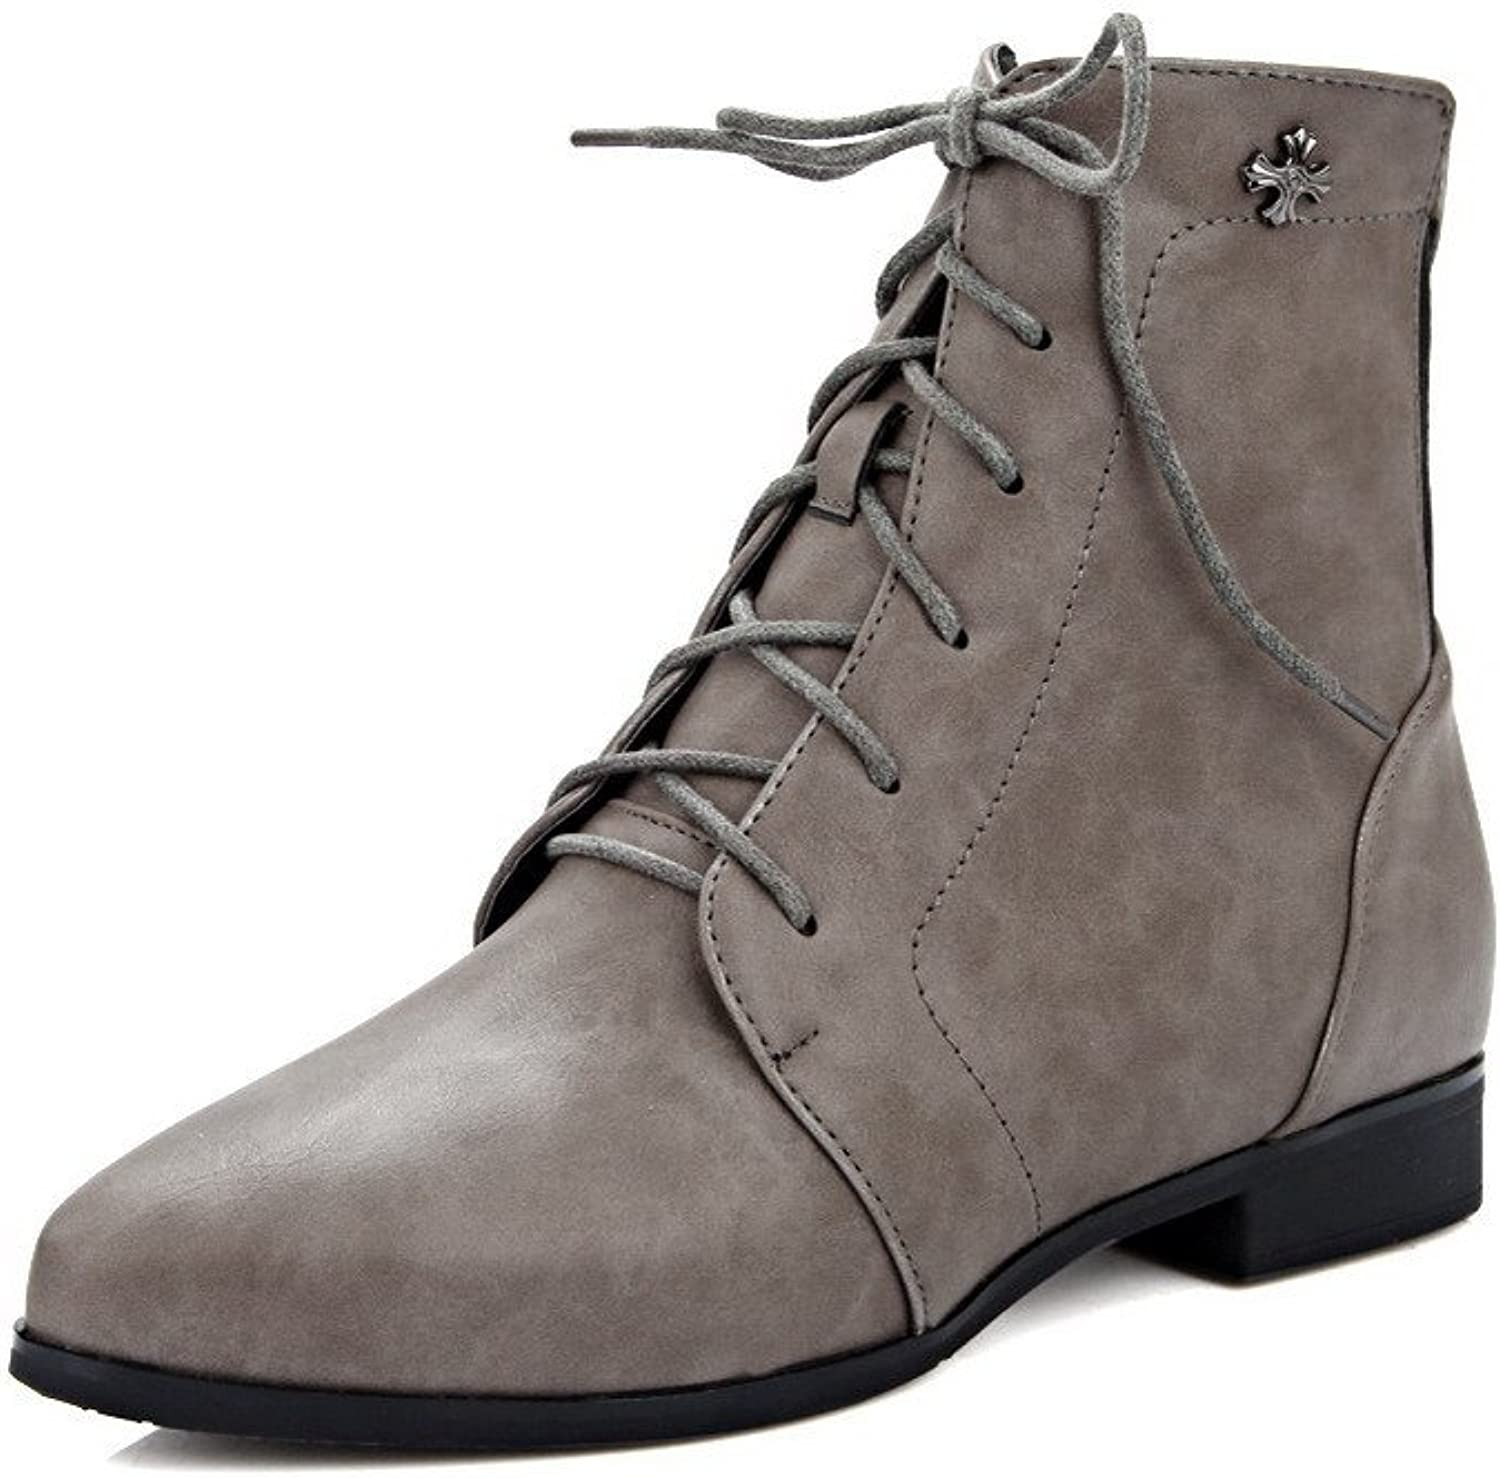 WeenFashion Women's Low-top Zipper Soft Material Low-Heels Pointed Closed Toe Boots